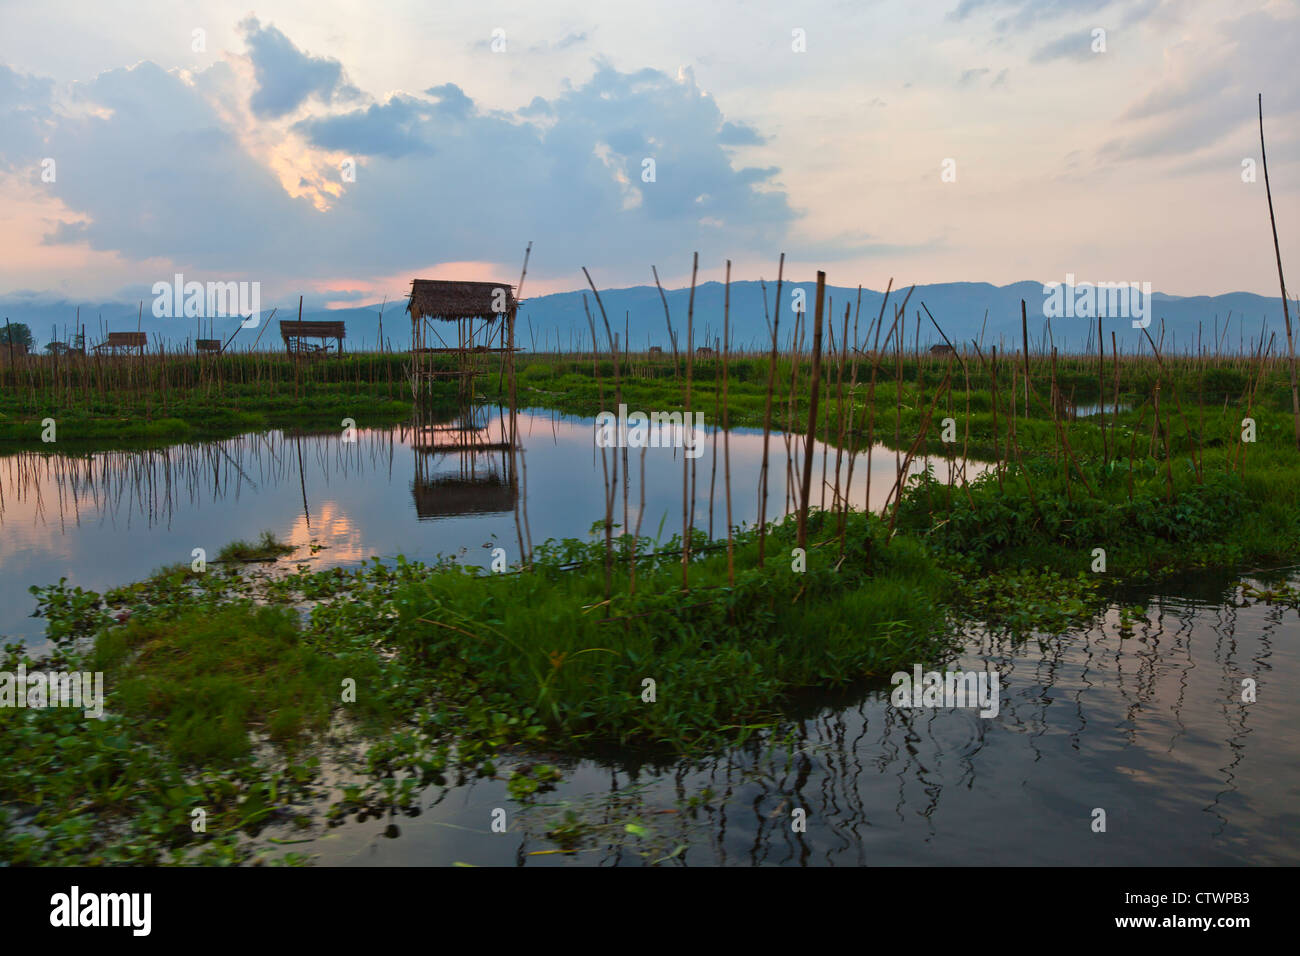 AGRICULTURAL HUTS surrounding INLE LAKE - MYANMAR Stock Photo